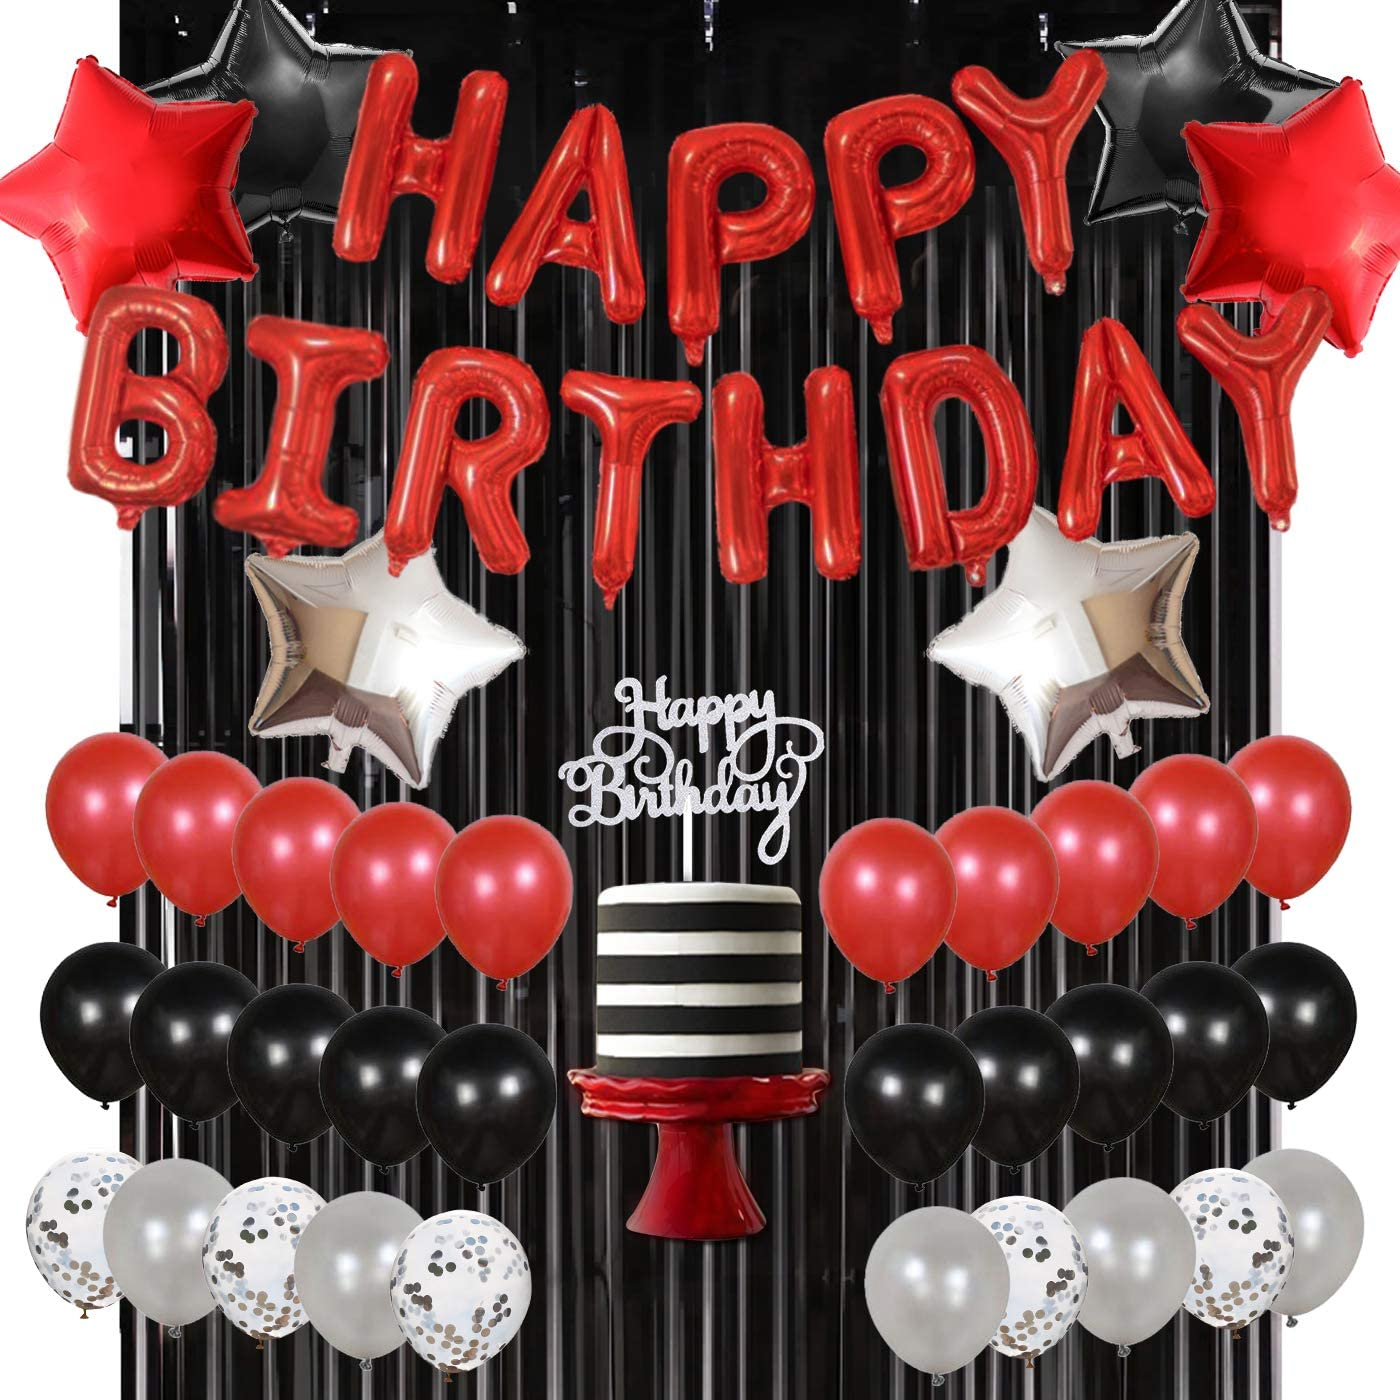 Red Black and Silver Balloons for Women Men Birthday Party Decorations Happy Birthday Balloon Banner Cake Topper Banner Star Foil Balloons Black Tinsel Curtain